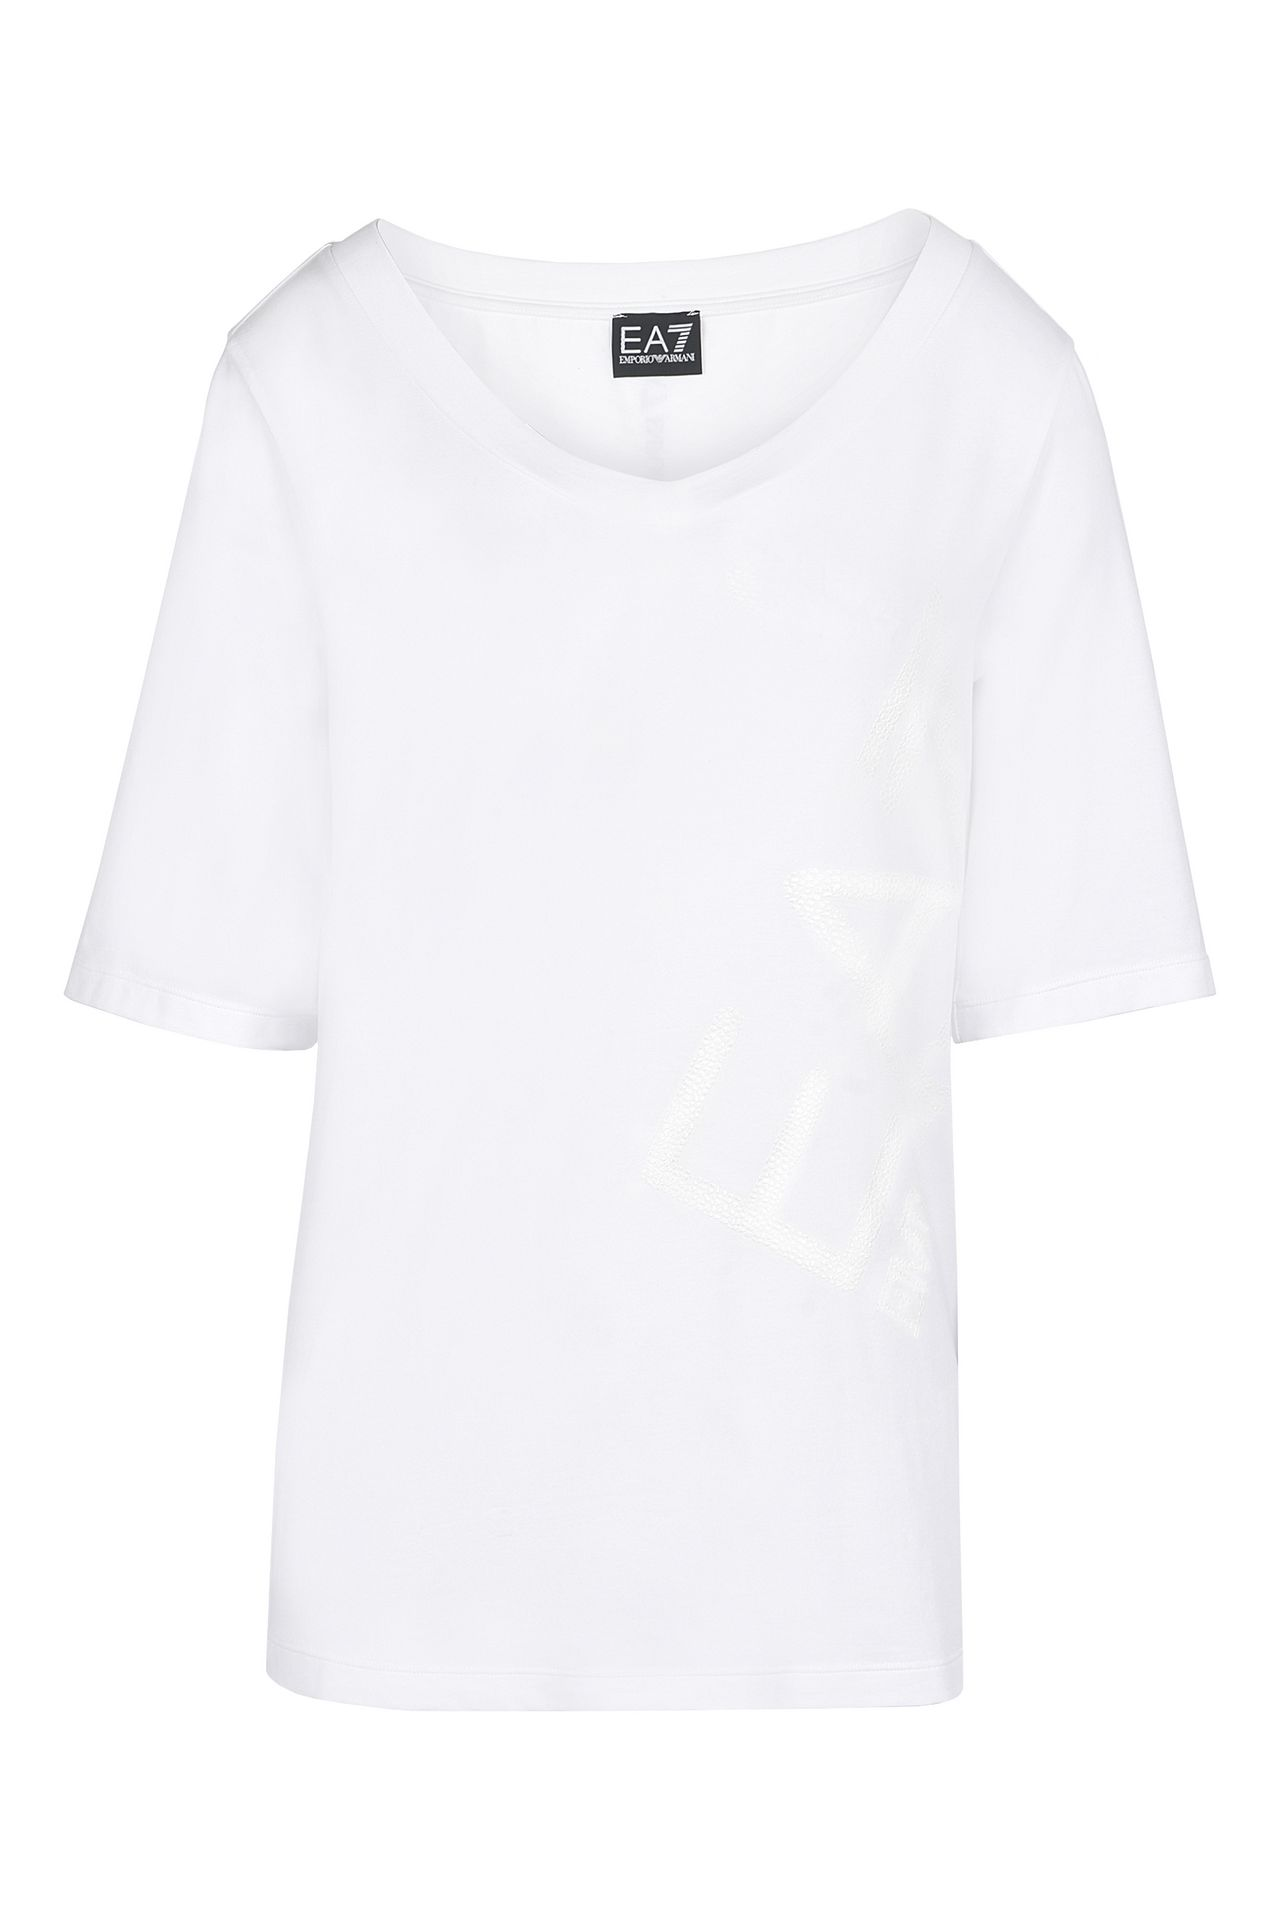 White t shirt for womens - Armani Short Sleeved T Shirts Women T Shirts And Sweatshirts